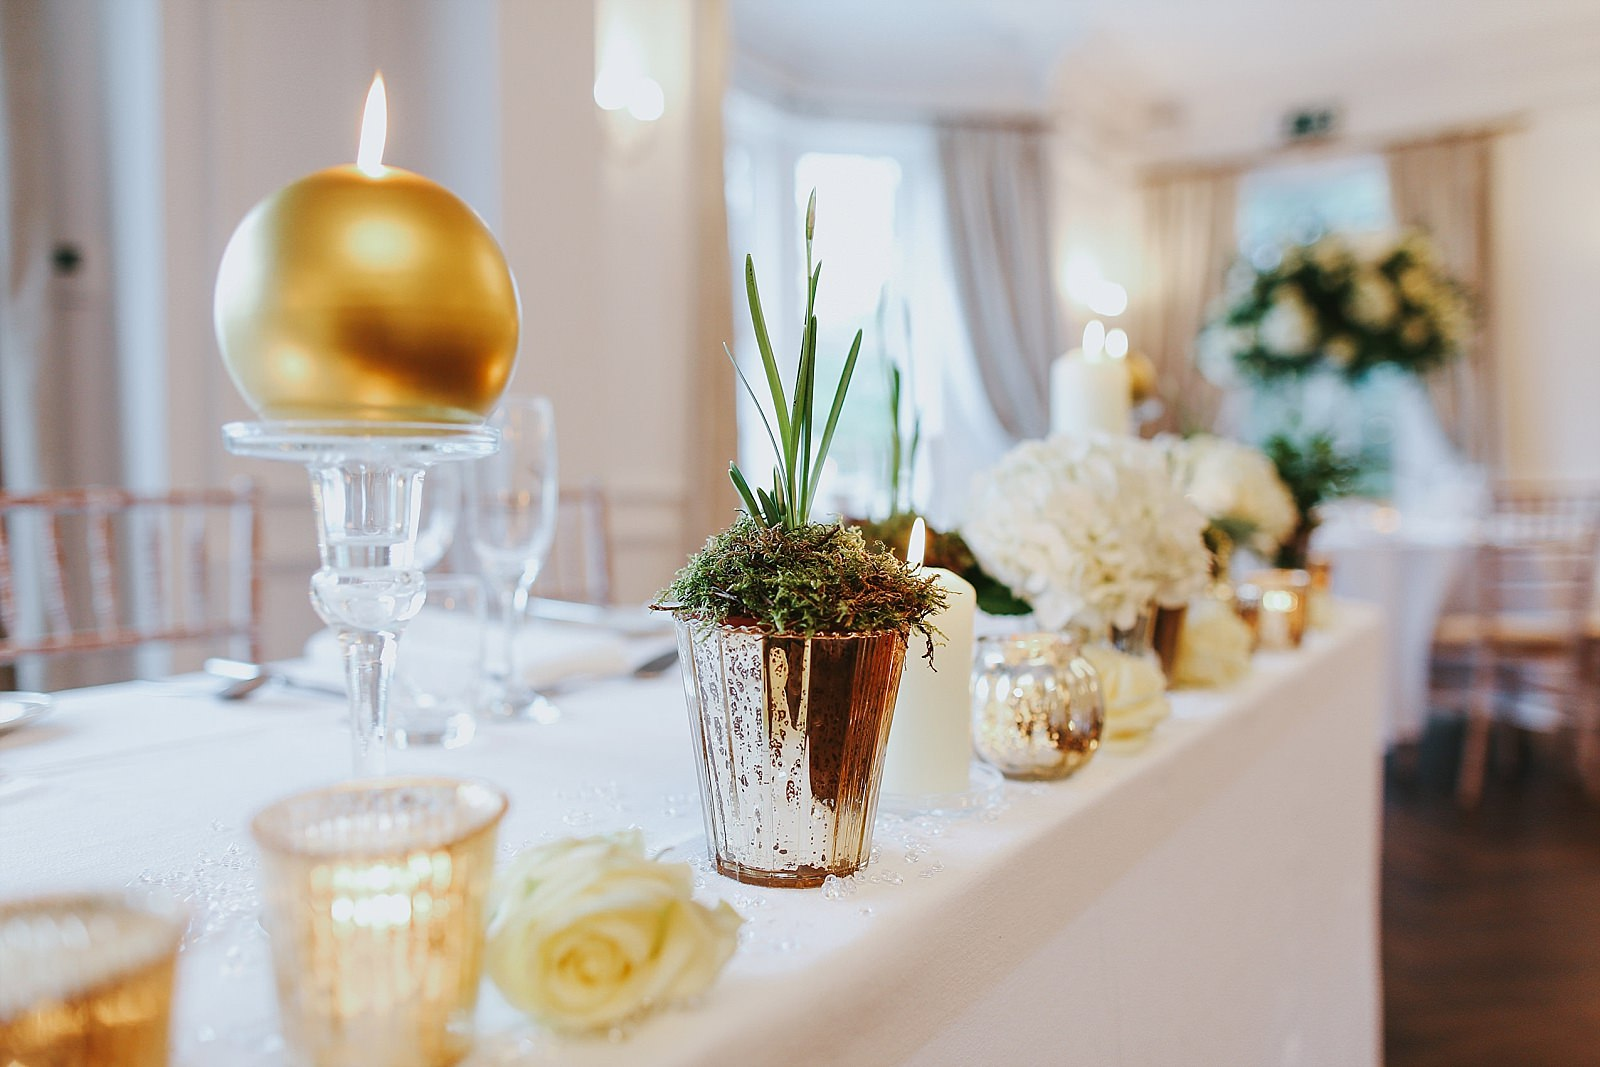 gold flower pots with flowers in